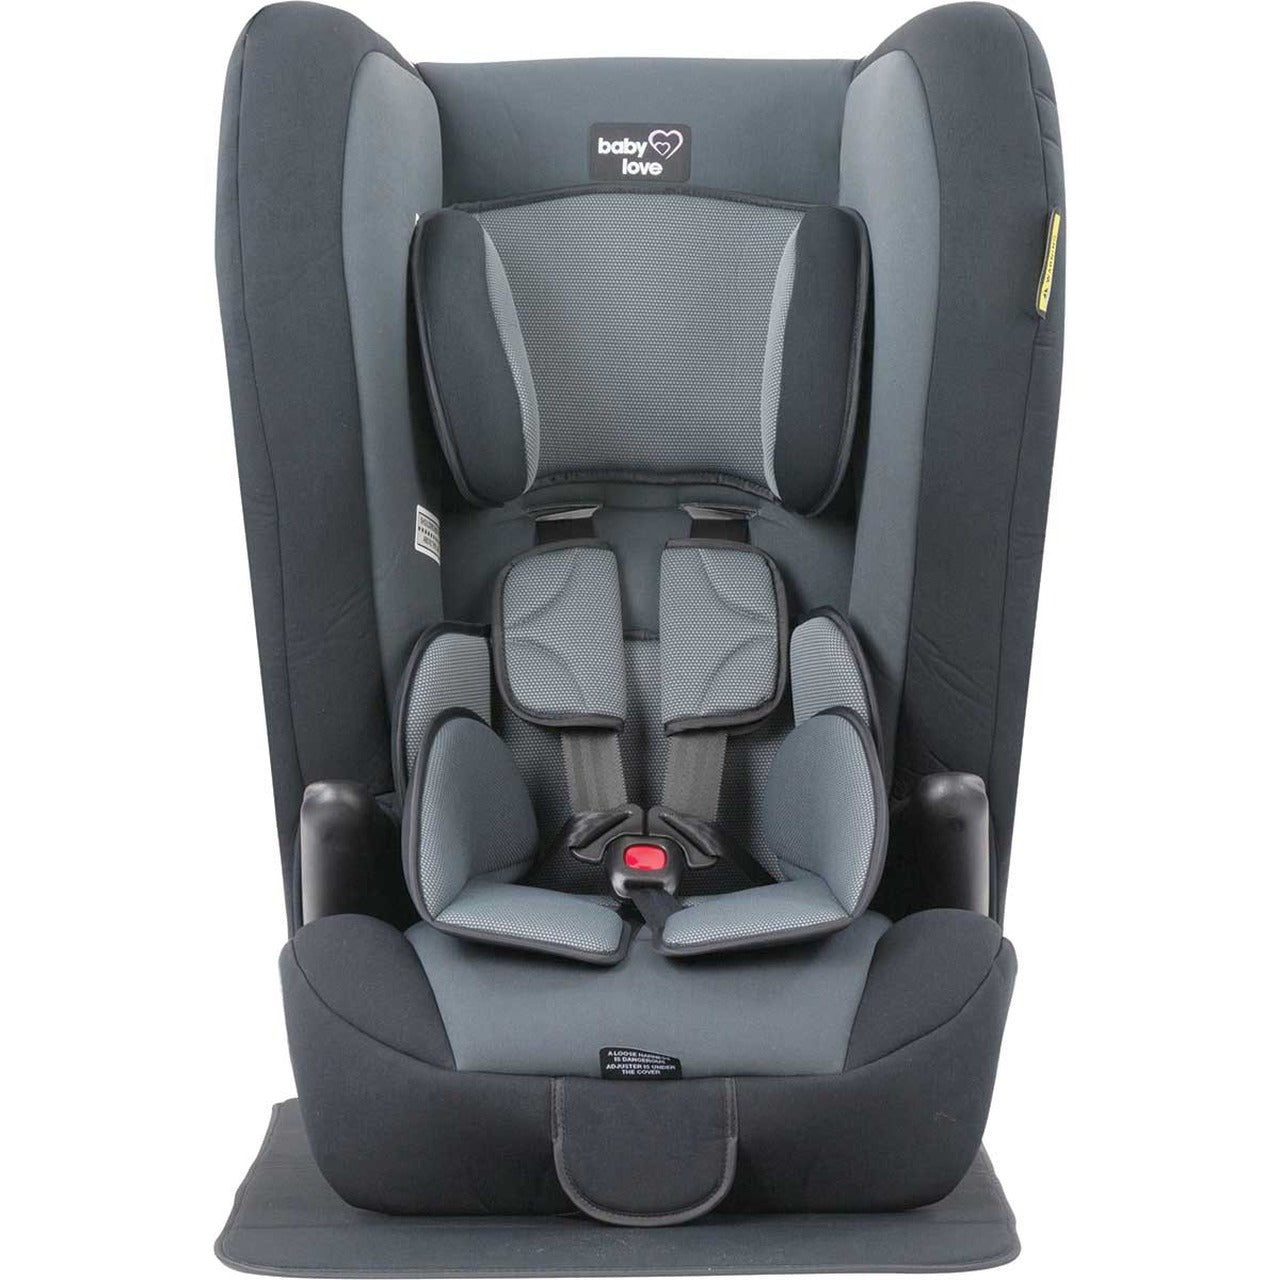 Baby Love Ezy Combo II Convertible Booster Seat